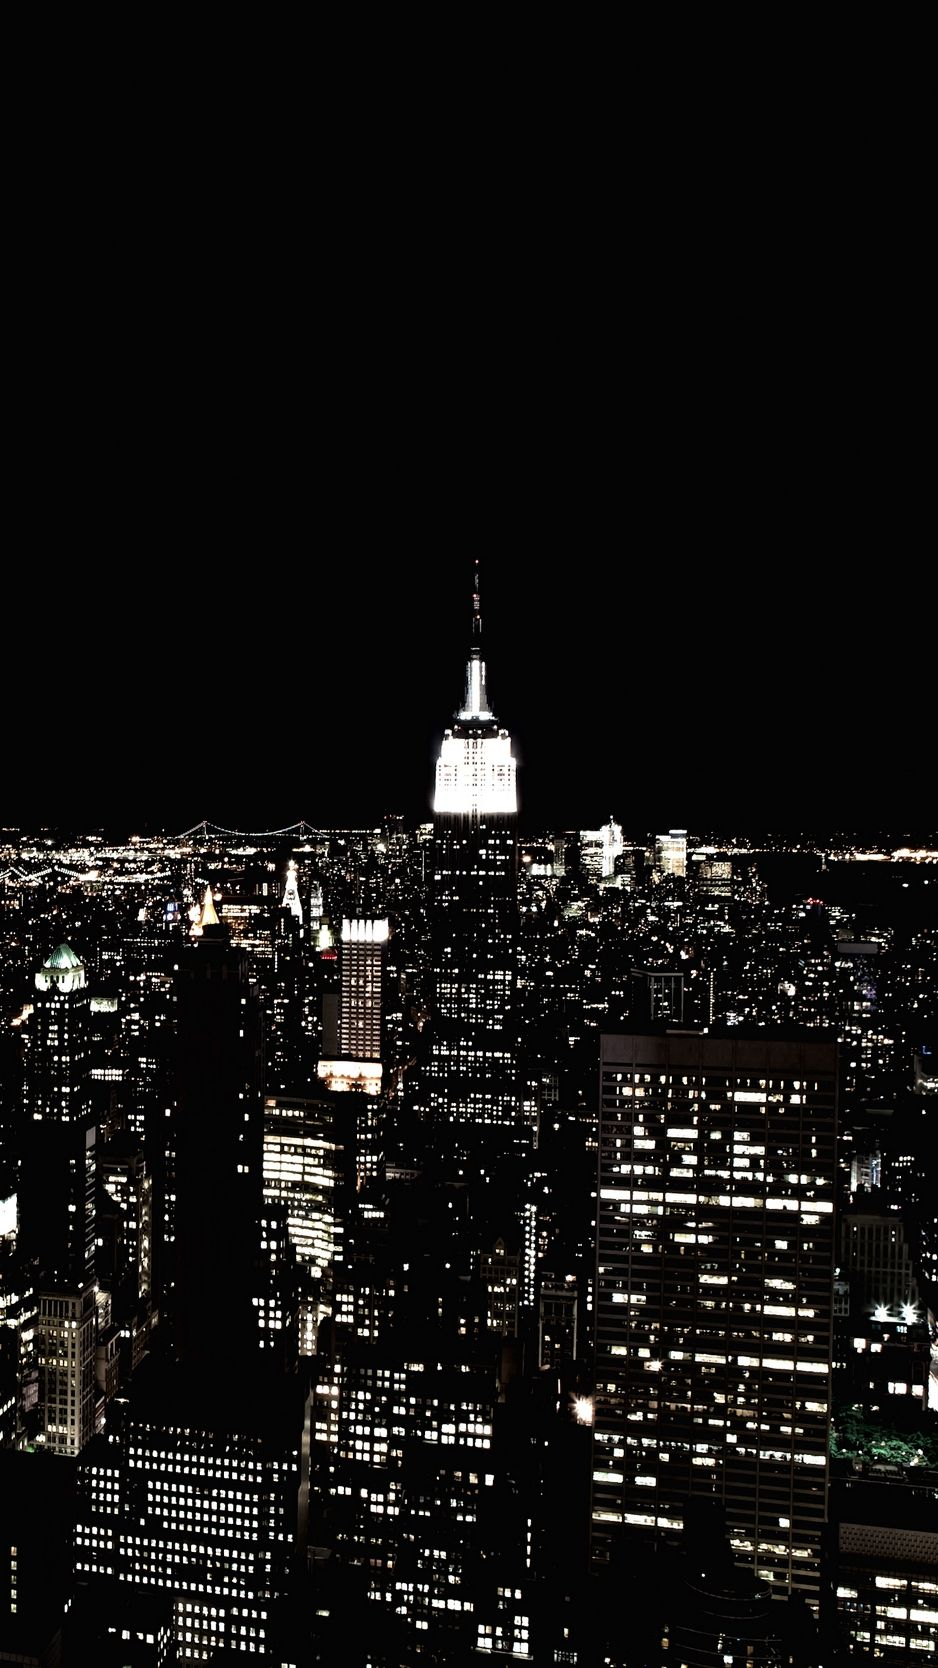 New York Night Iphone Wallpapers Top Free New York Night Iphone Backgrounds Wallpaperaccess